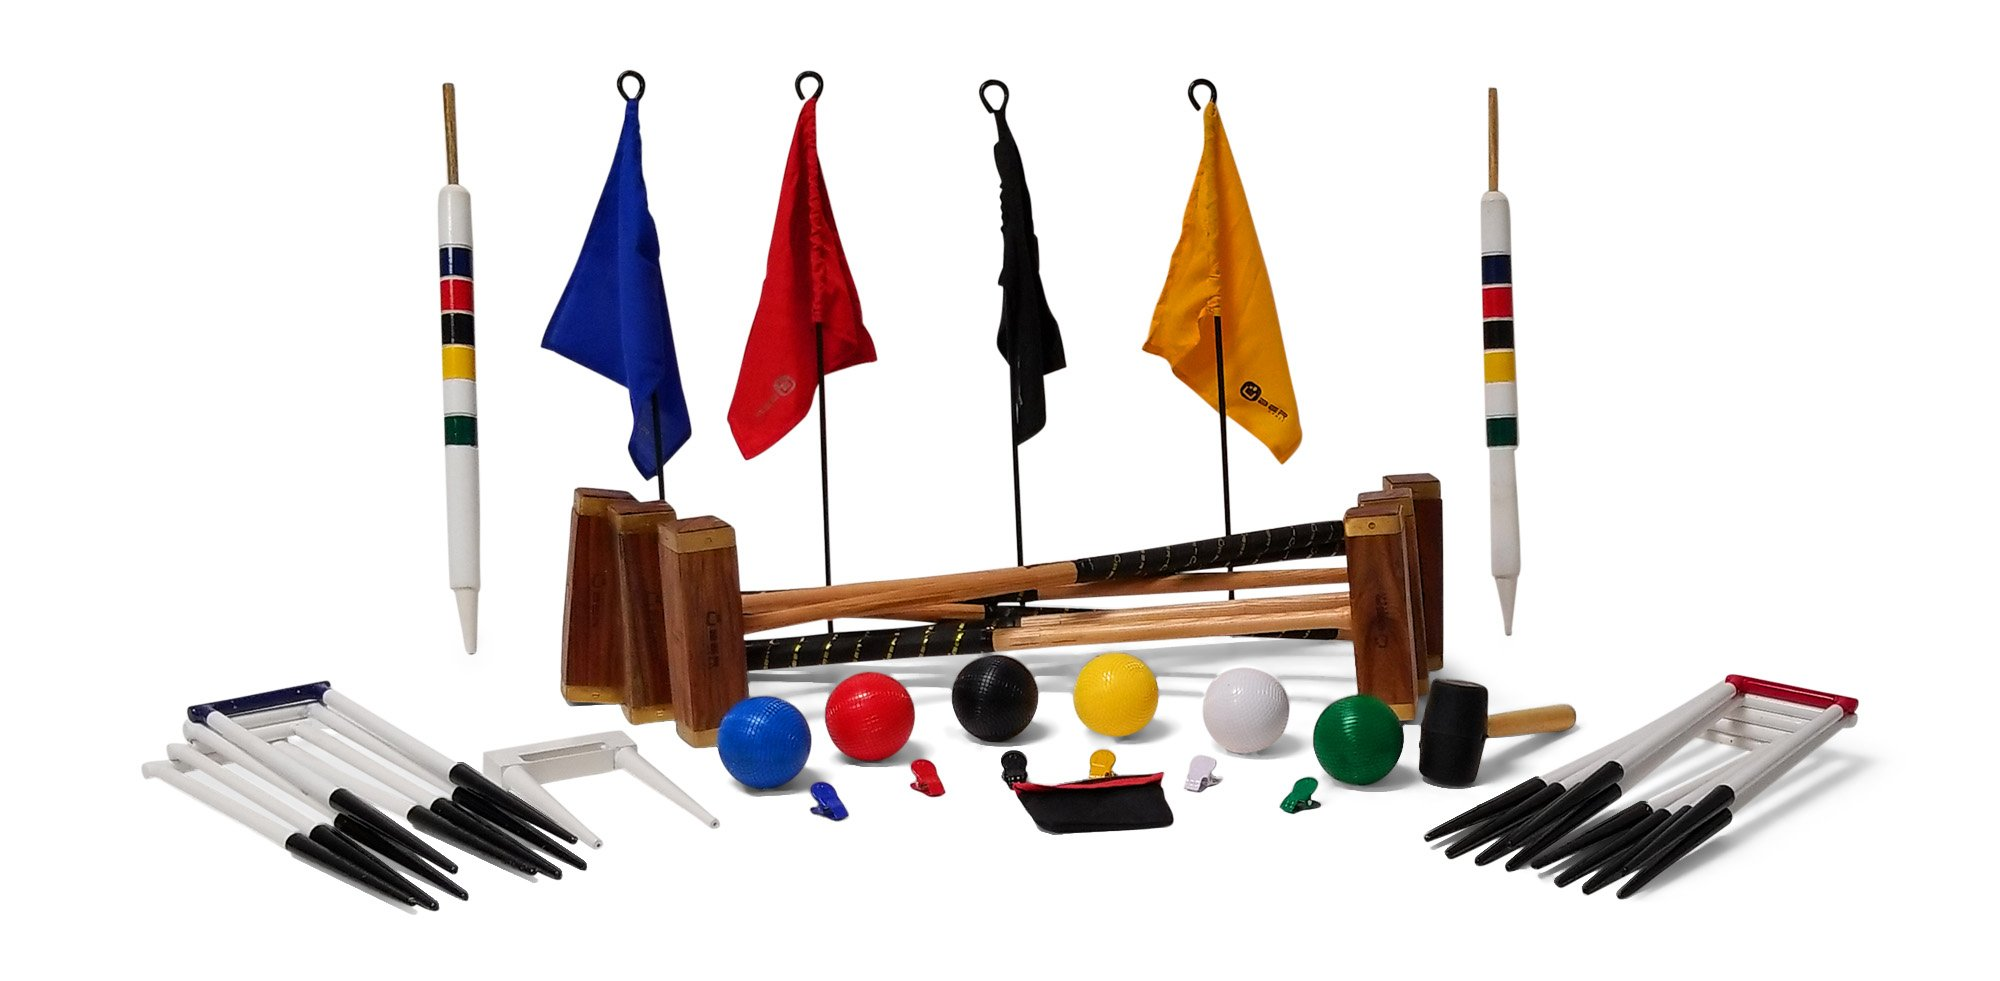 Uber Games 9 Wicket Croquet Set - Championship - 6 Player